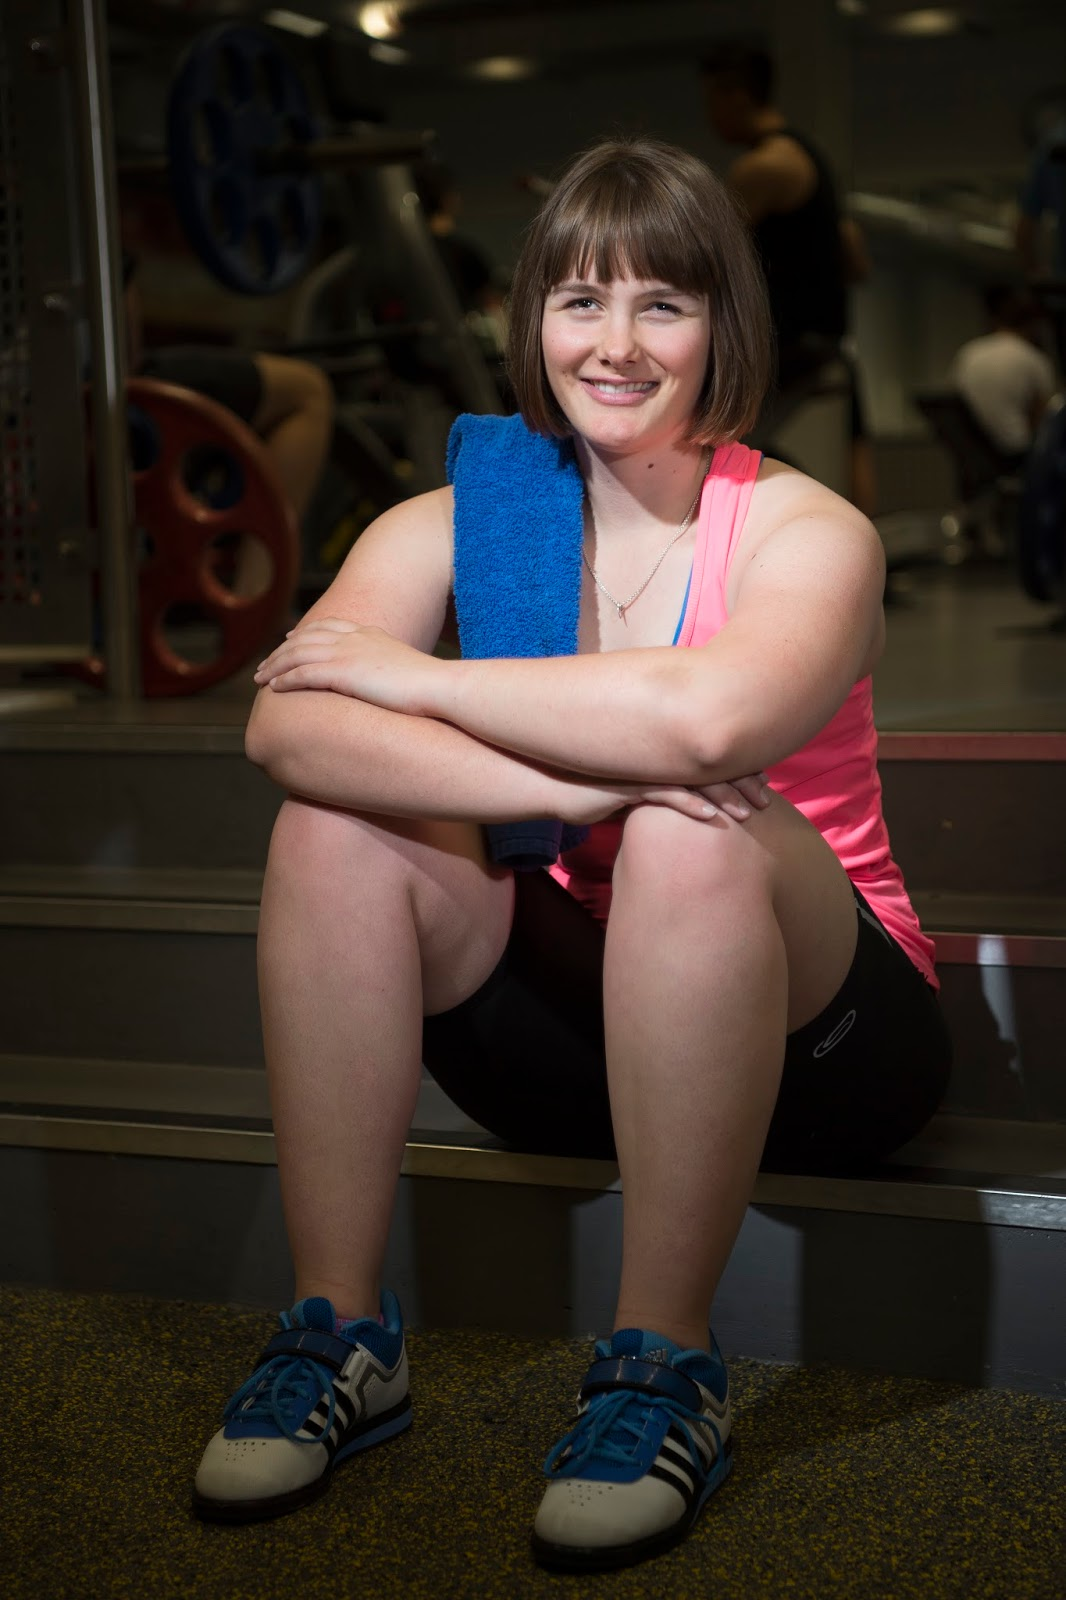 Photo of Millie smiling, sitting down wearing sports clothing and trainers, a towel is hung over one shoulder